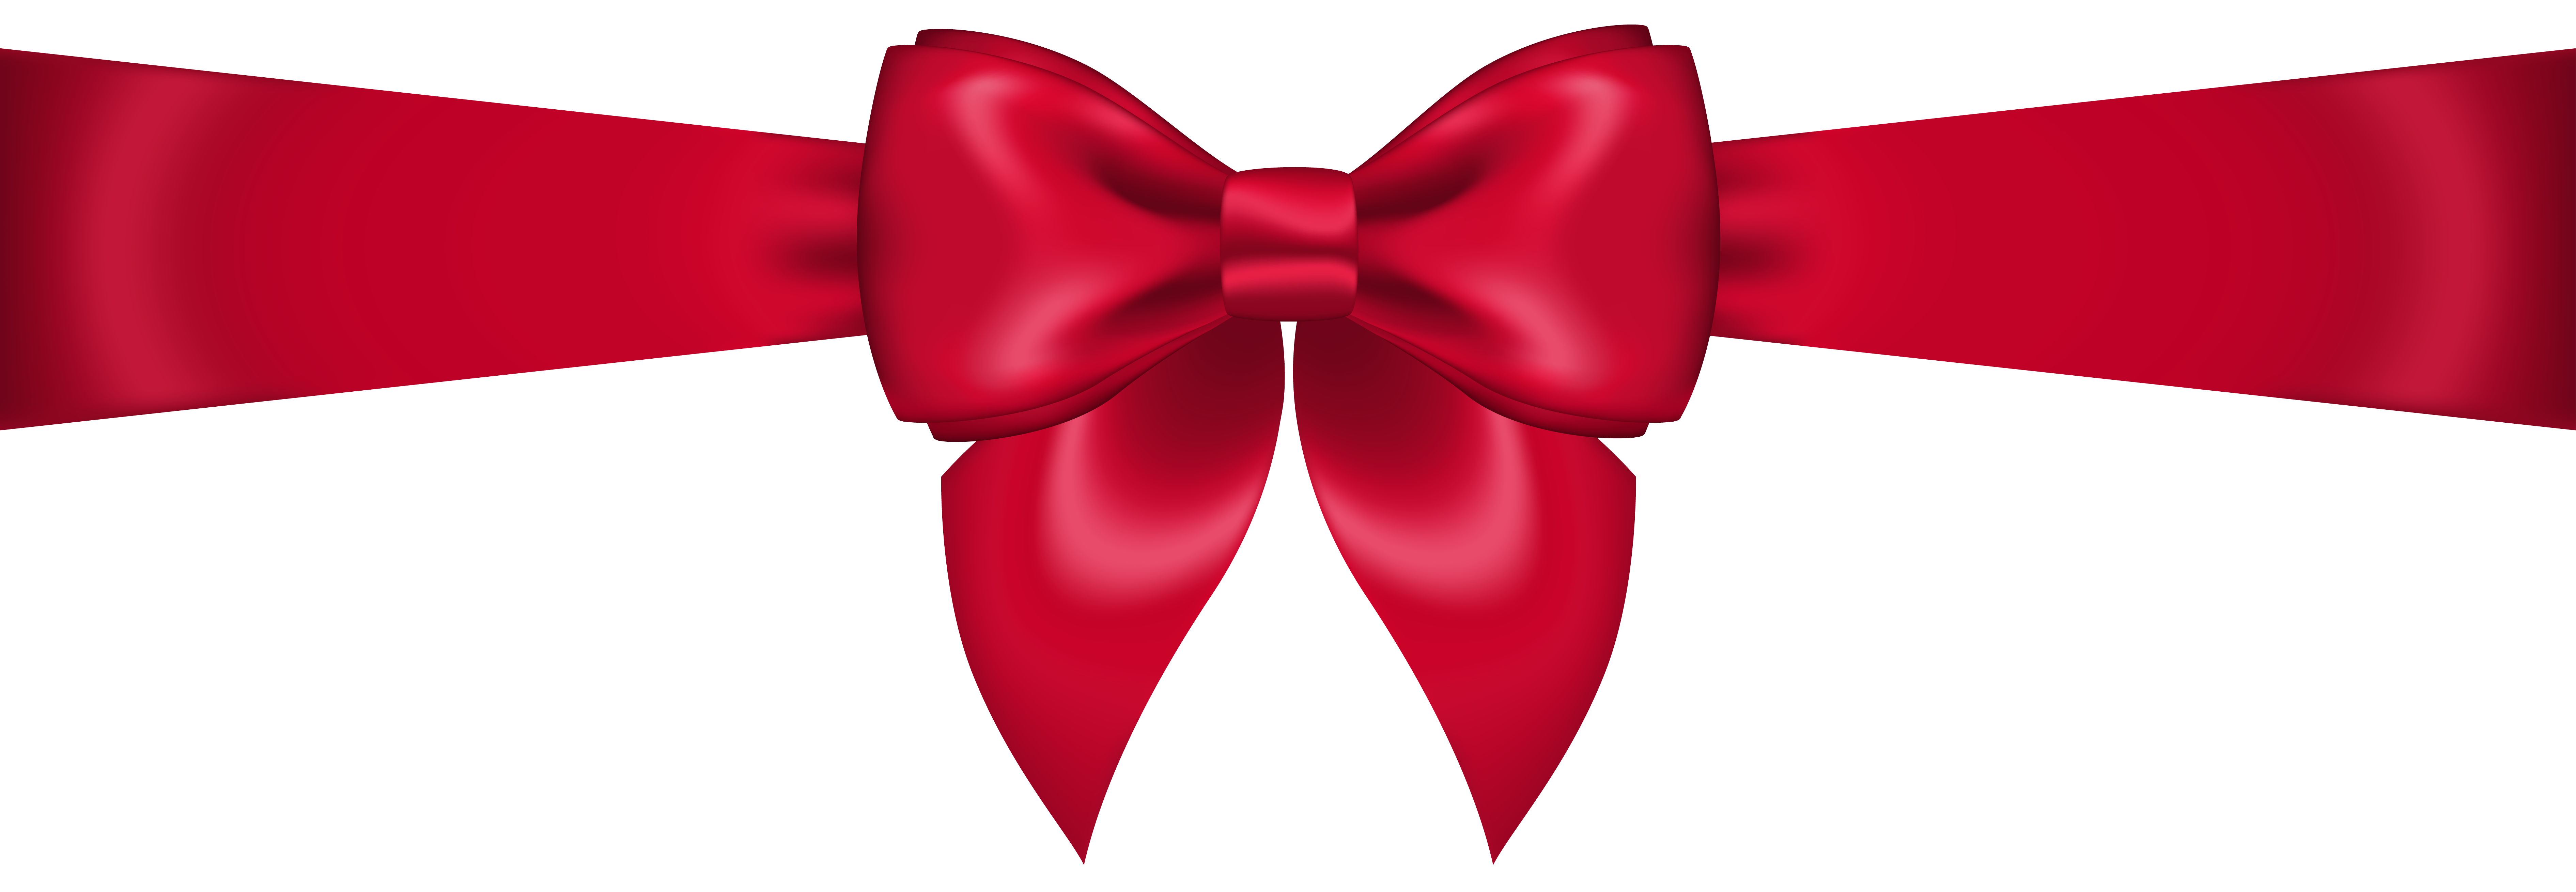 Red Bow Clipart Transparent-Red bow clipart transparent-11